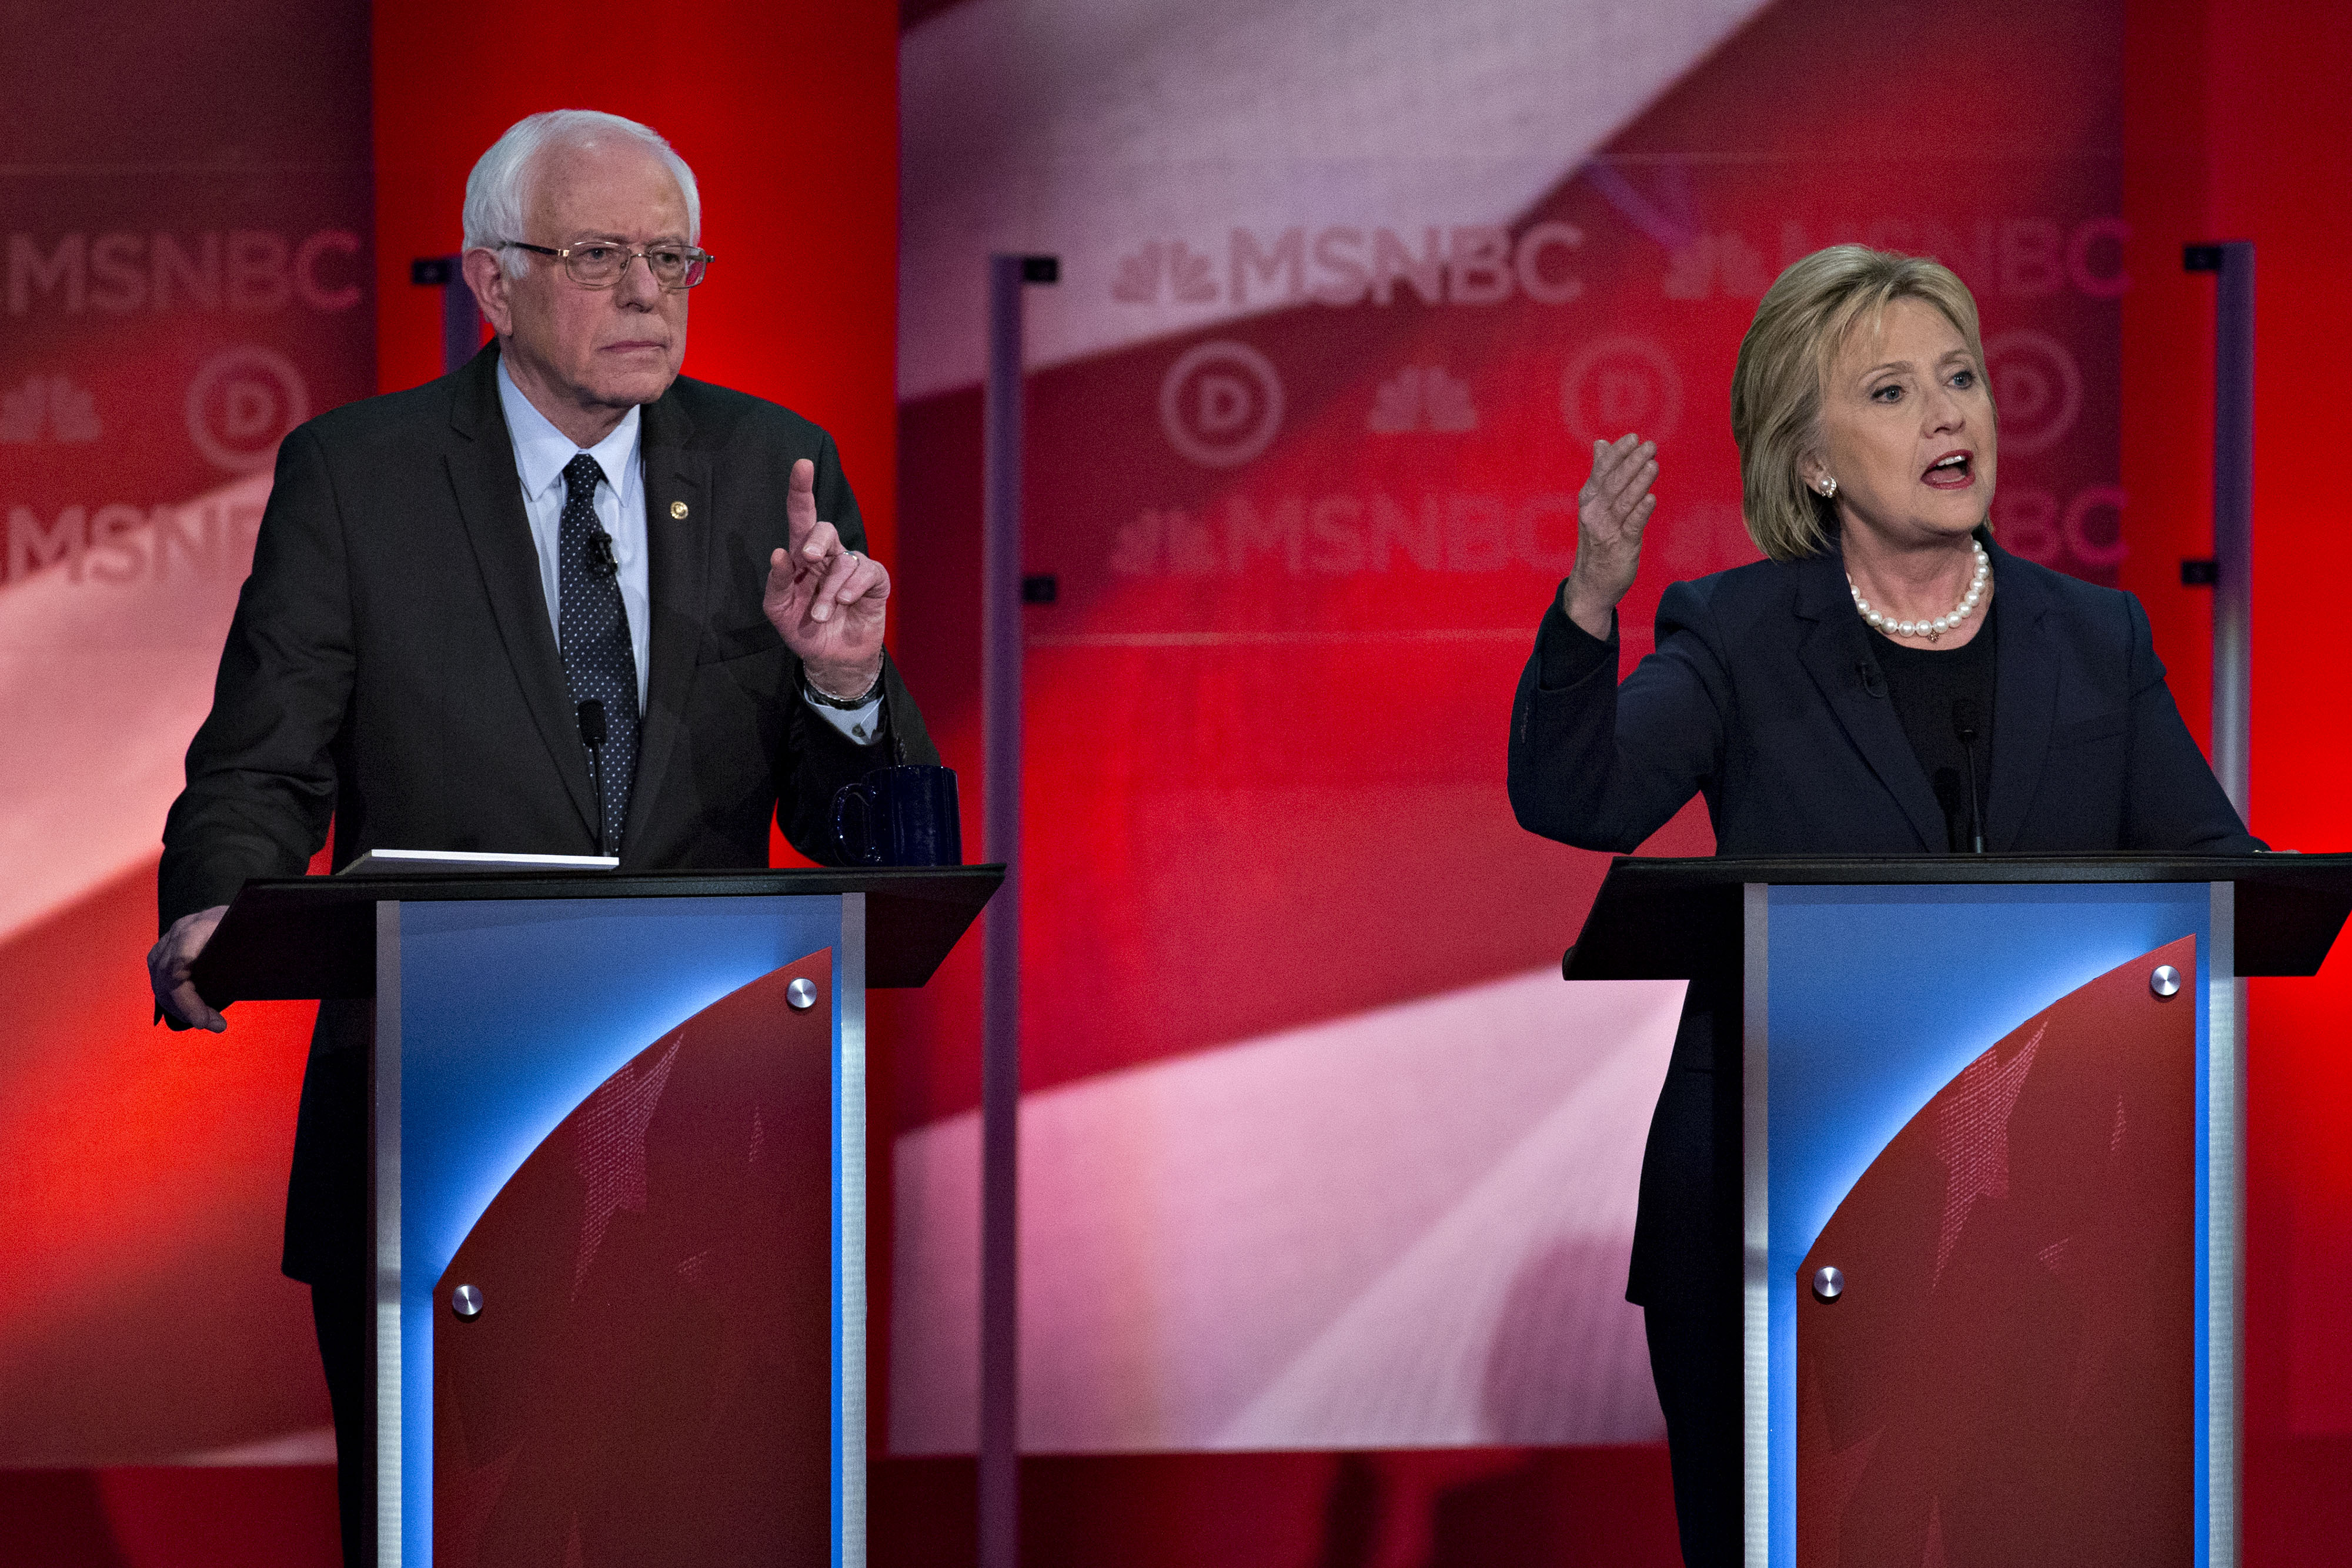 Hillary Clinton, former Secretary of State and 2016 Democratic presidential candidate, speaks as Senator Bernie Sanders, an independent from Vermont and 2016 Democratic presidential candidate, listens during the Democratic presidential candidate debate at the University of New Hampshire in Durham, N.H., on Feb. 4, 2016